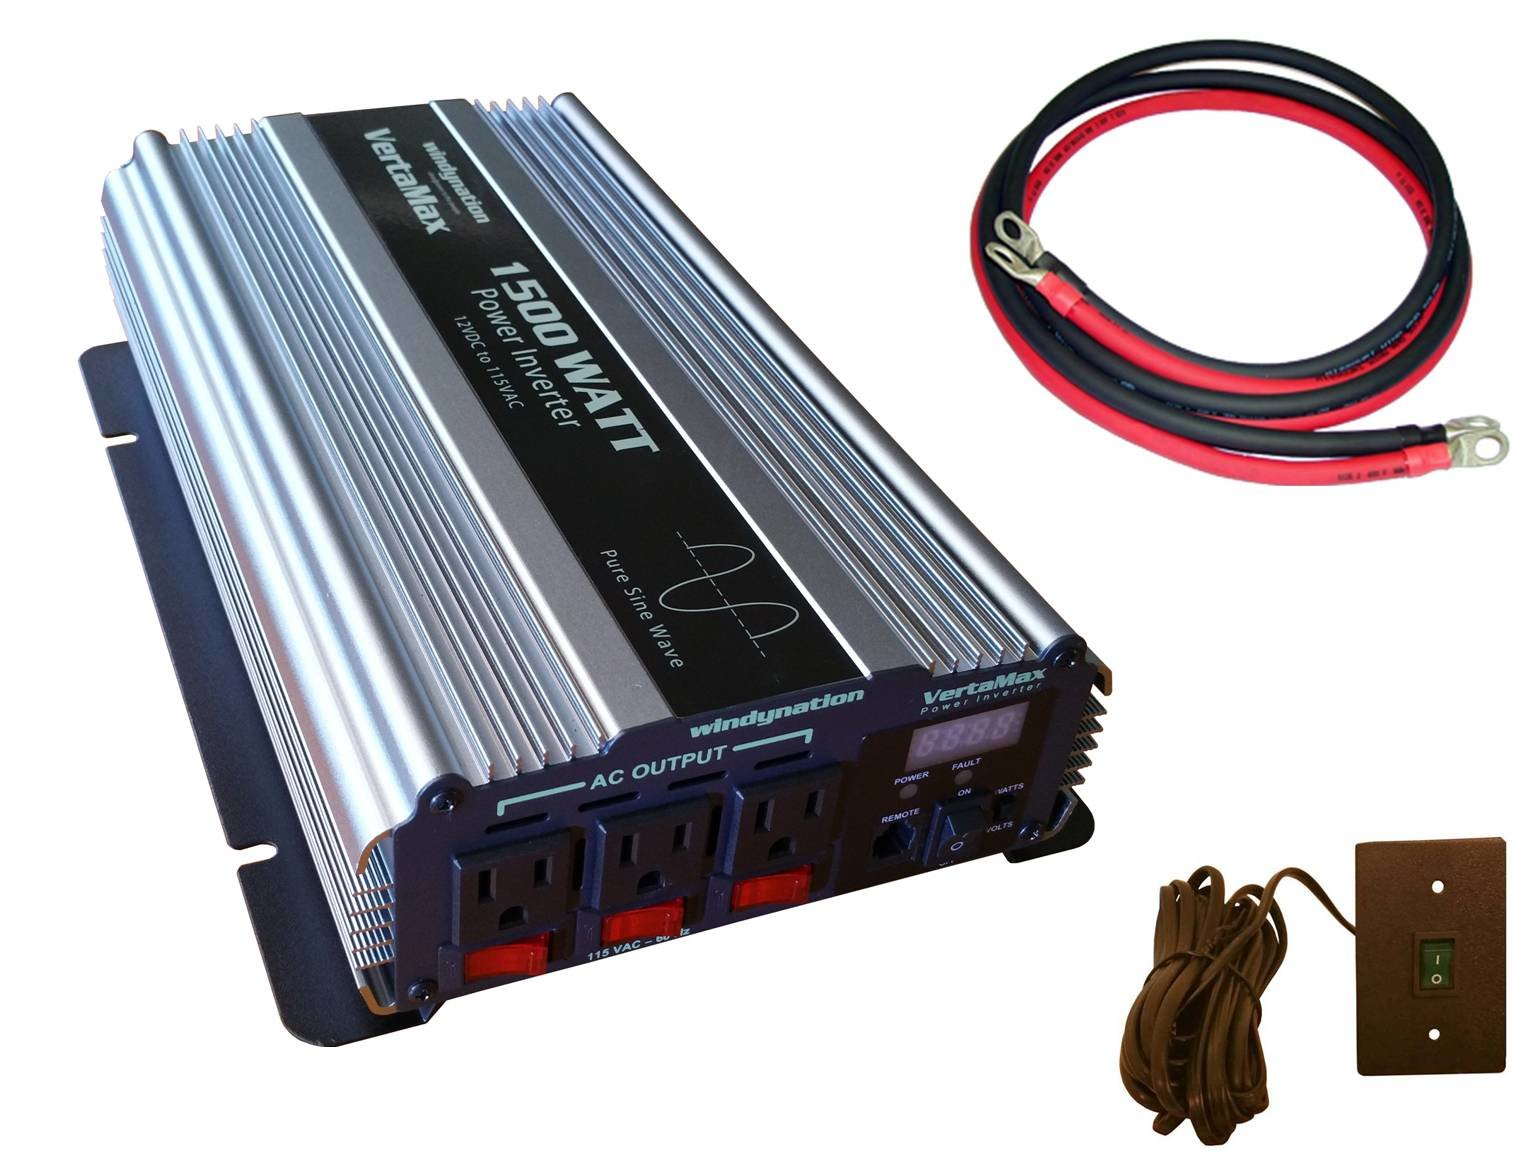 1000 Watt Pure Sine Wave Inverter Vertamax 1500 Watt 12 Volt Pure Sine Wave Power Inverter Dc To Ac W Lcd Display